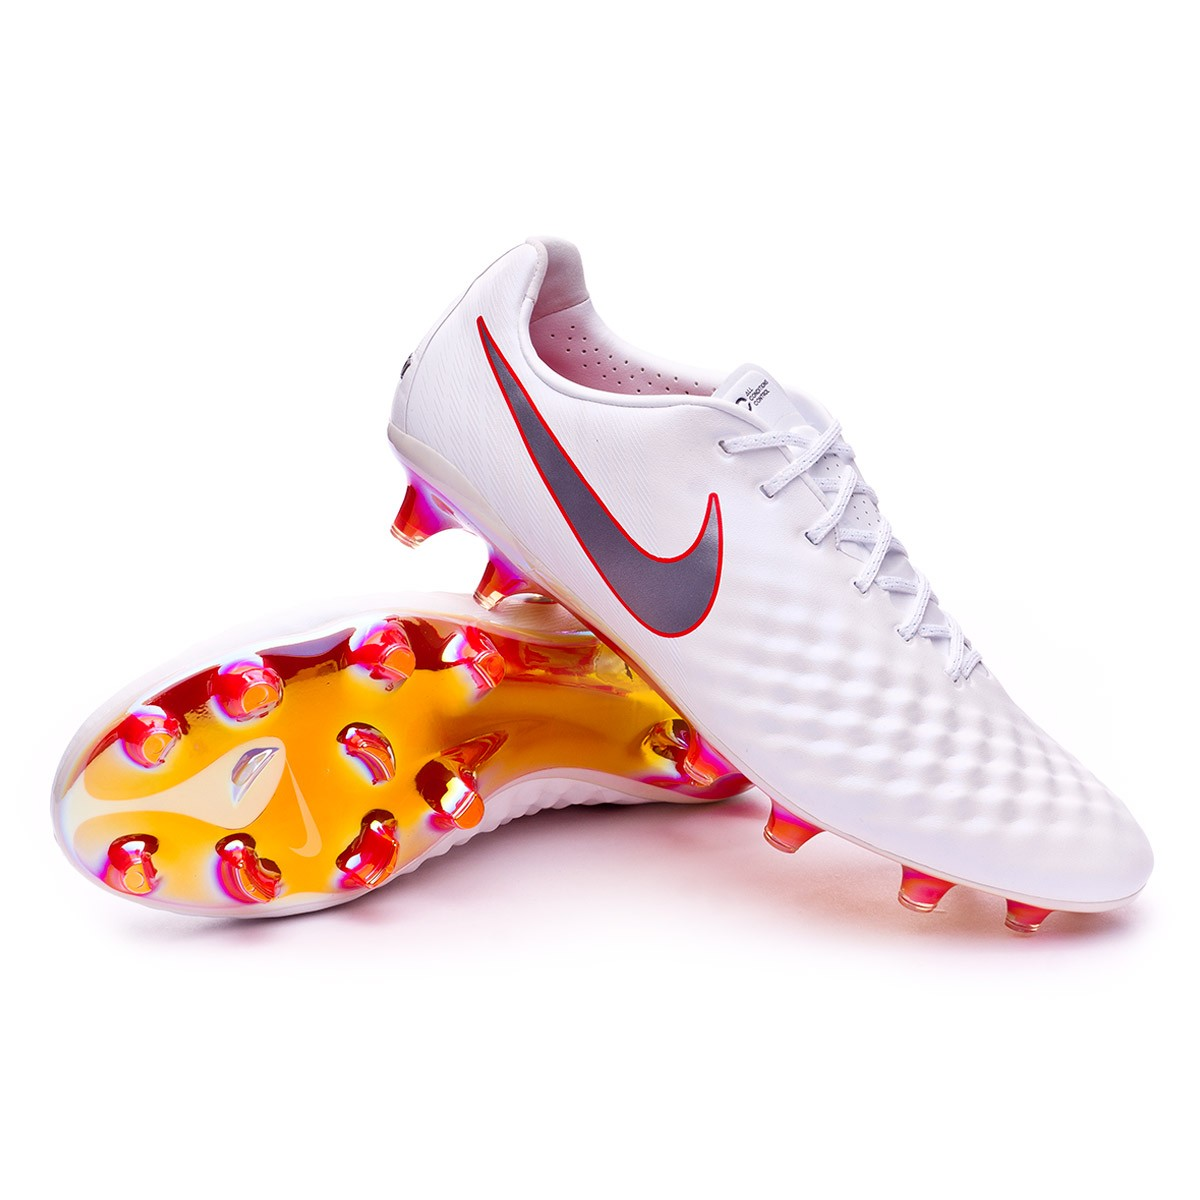 Fg Obra Bota Ii White Magista Metallic Cool Crimson Light Elite Grey q4A3LR5j